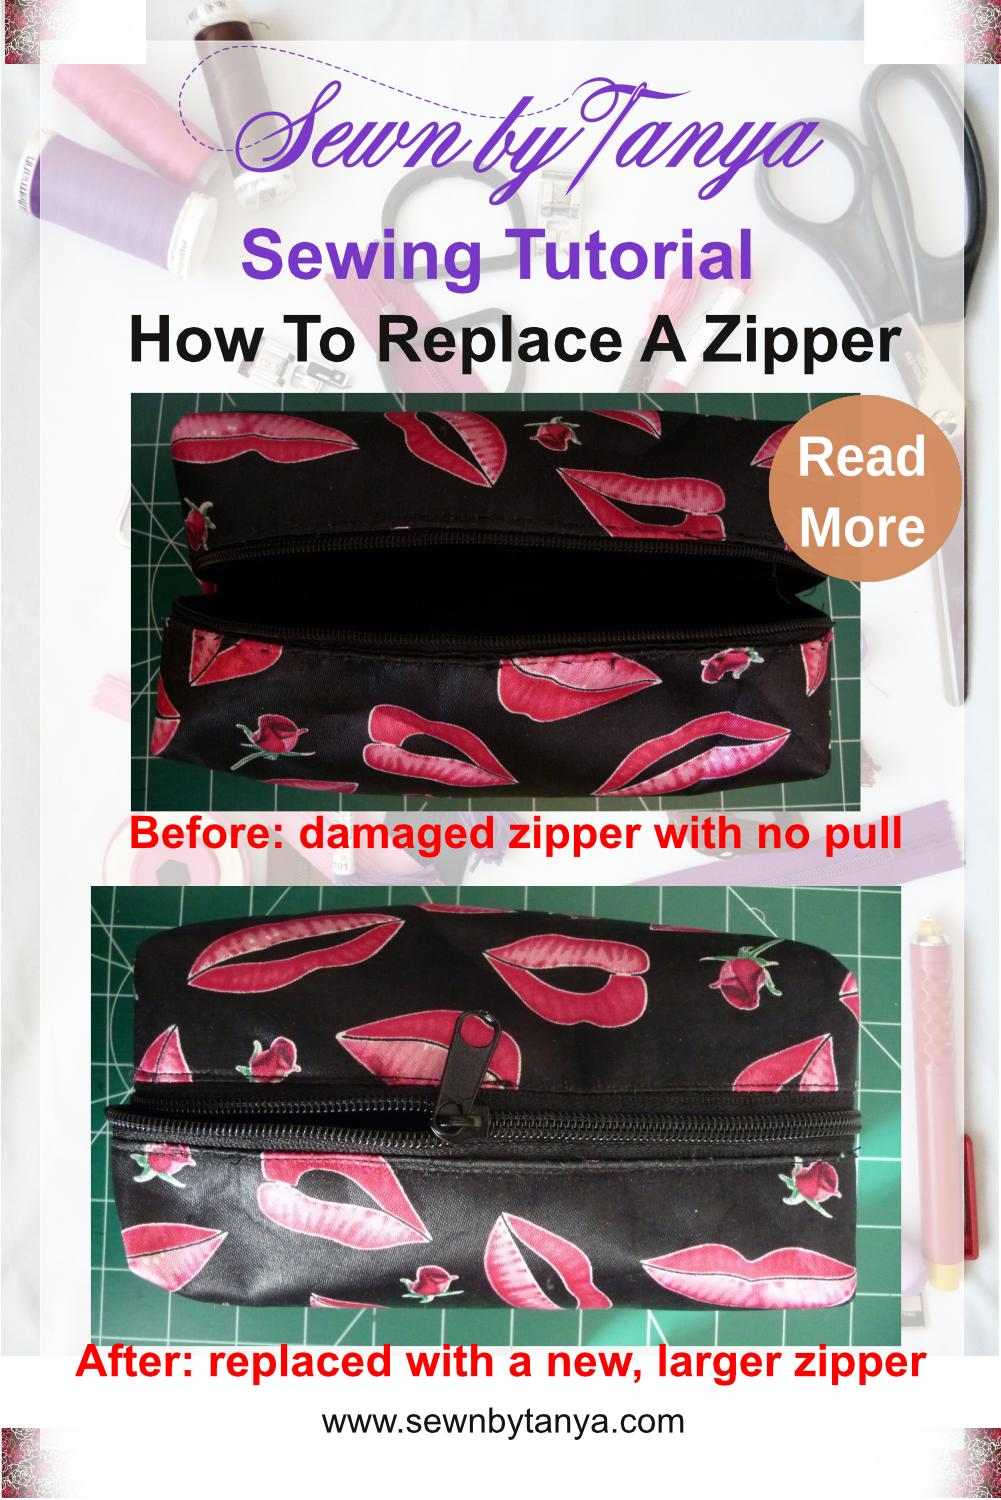 """Pinterest Image for """"Sewn by Tanya Sewing Tutorial: How to Replace A Zipper"""" with before (damaged zipper with no pull) and after (replaced with a new larger zipper) photos"""